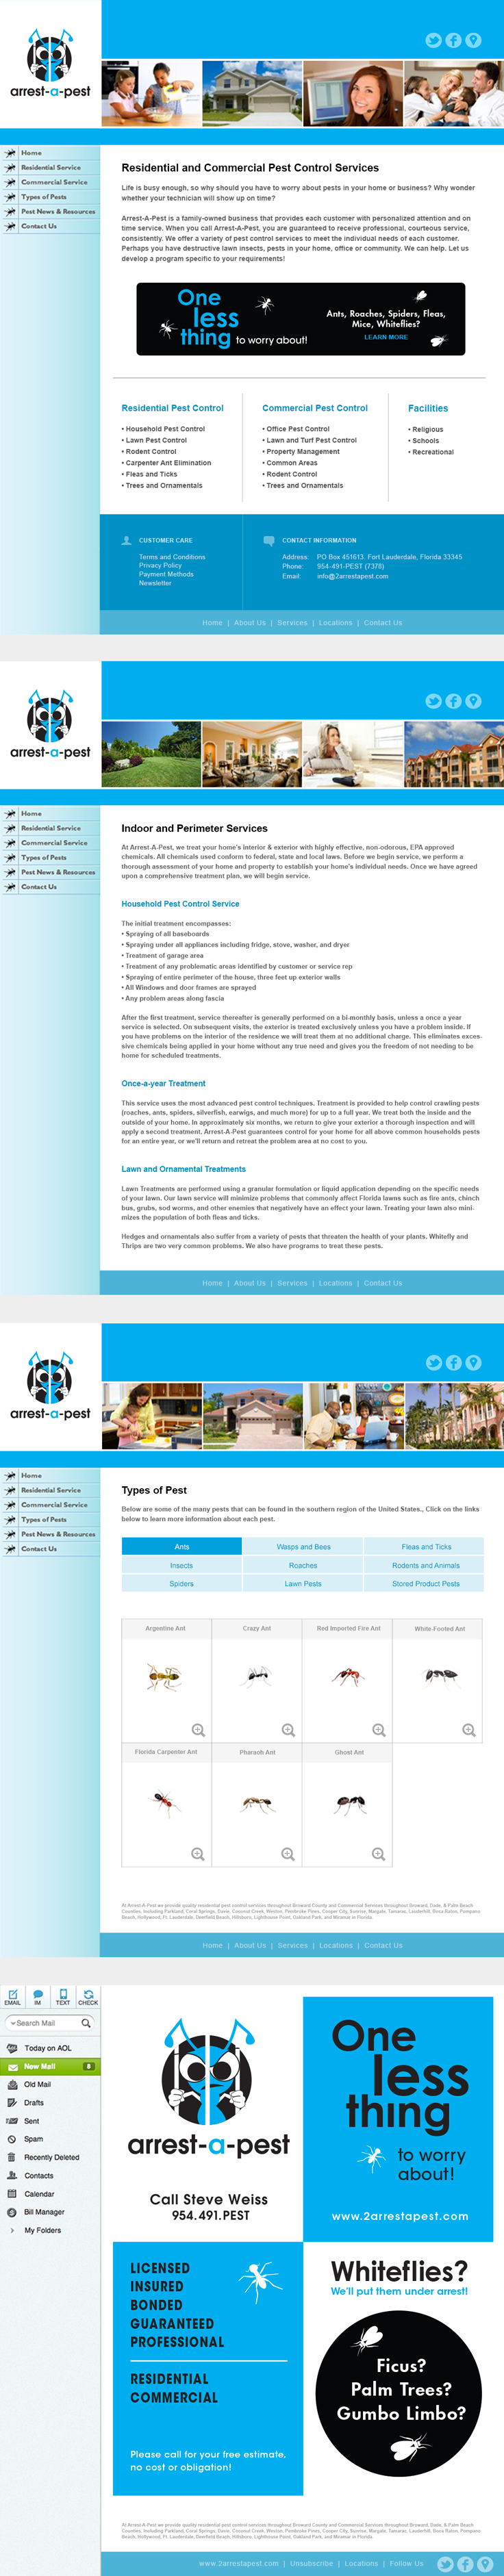 Website Redesign And Email Flier Concept For Arrest A Pest By Screamin Cow Design Studio Webdesign In Interactive Design Website Redesign Web Design Studio